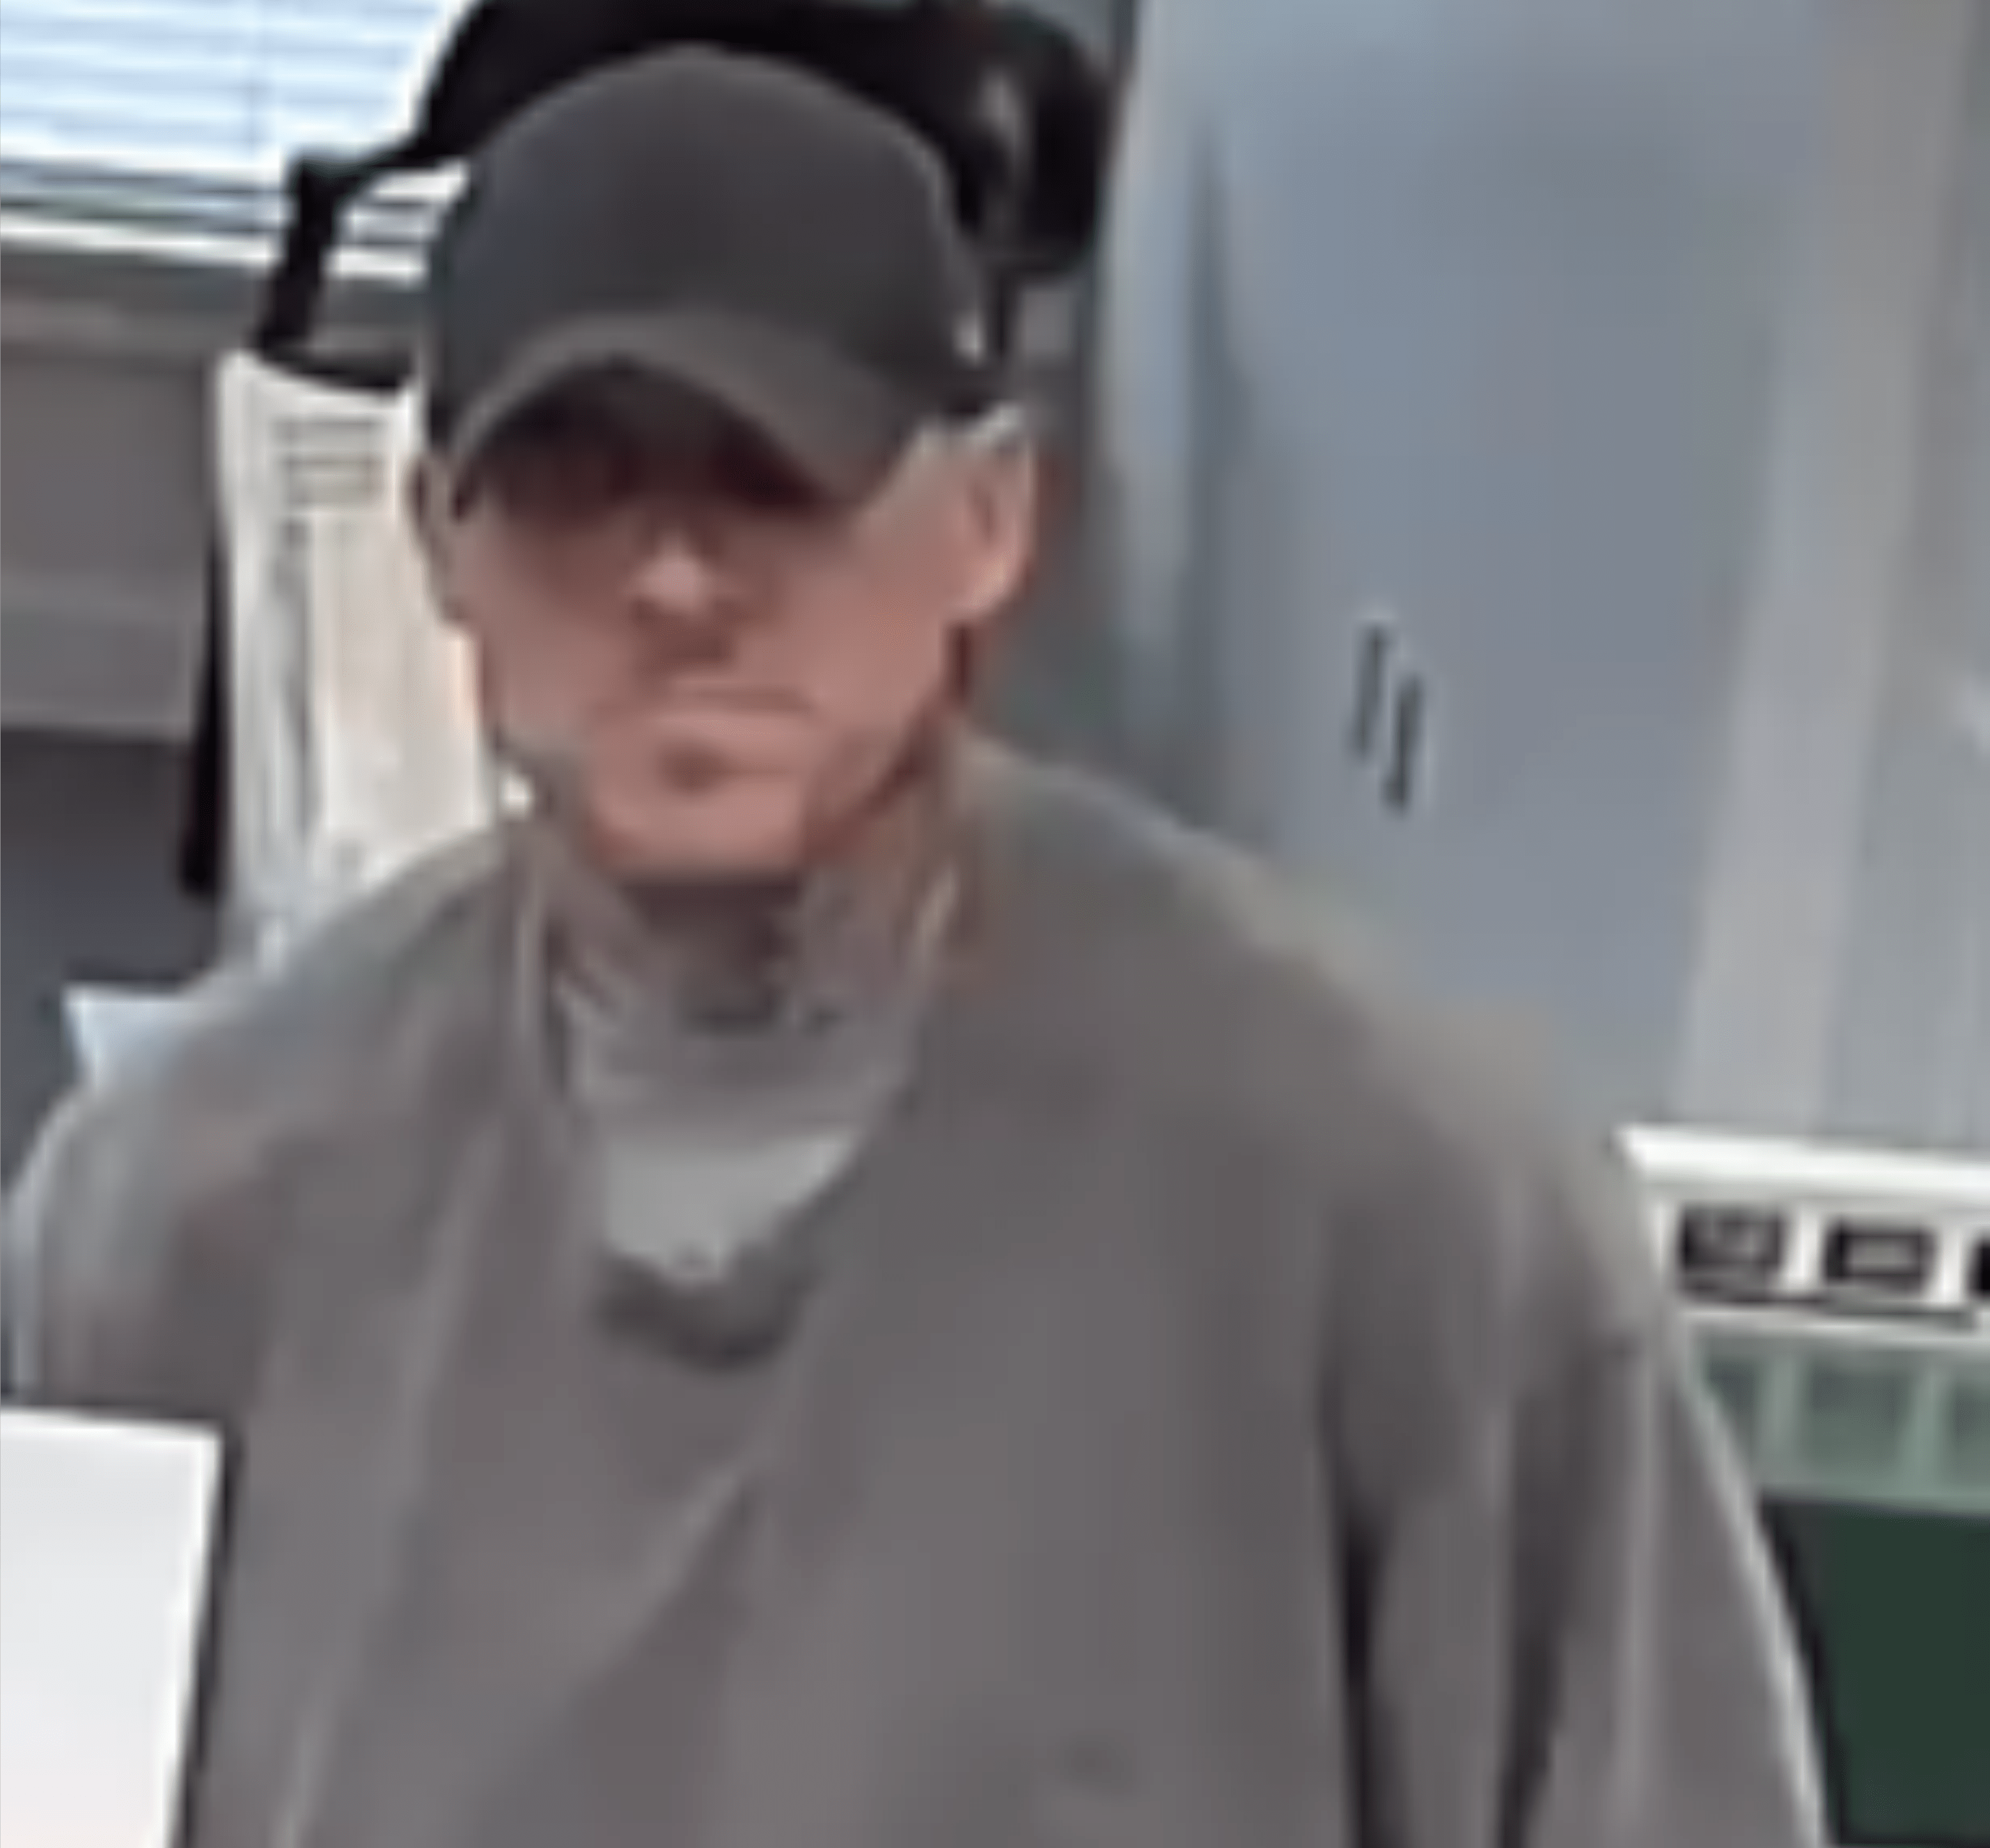 Arrest made in connection to Woodruff bank robbery